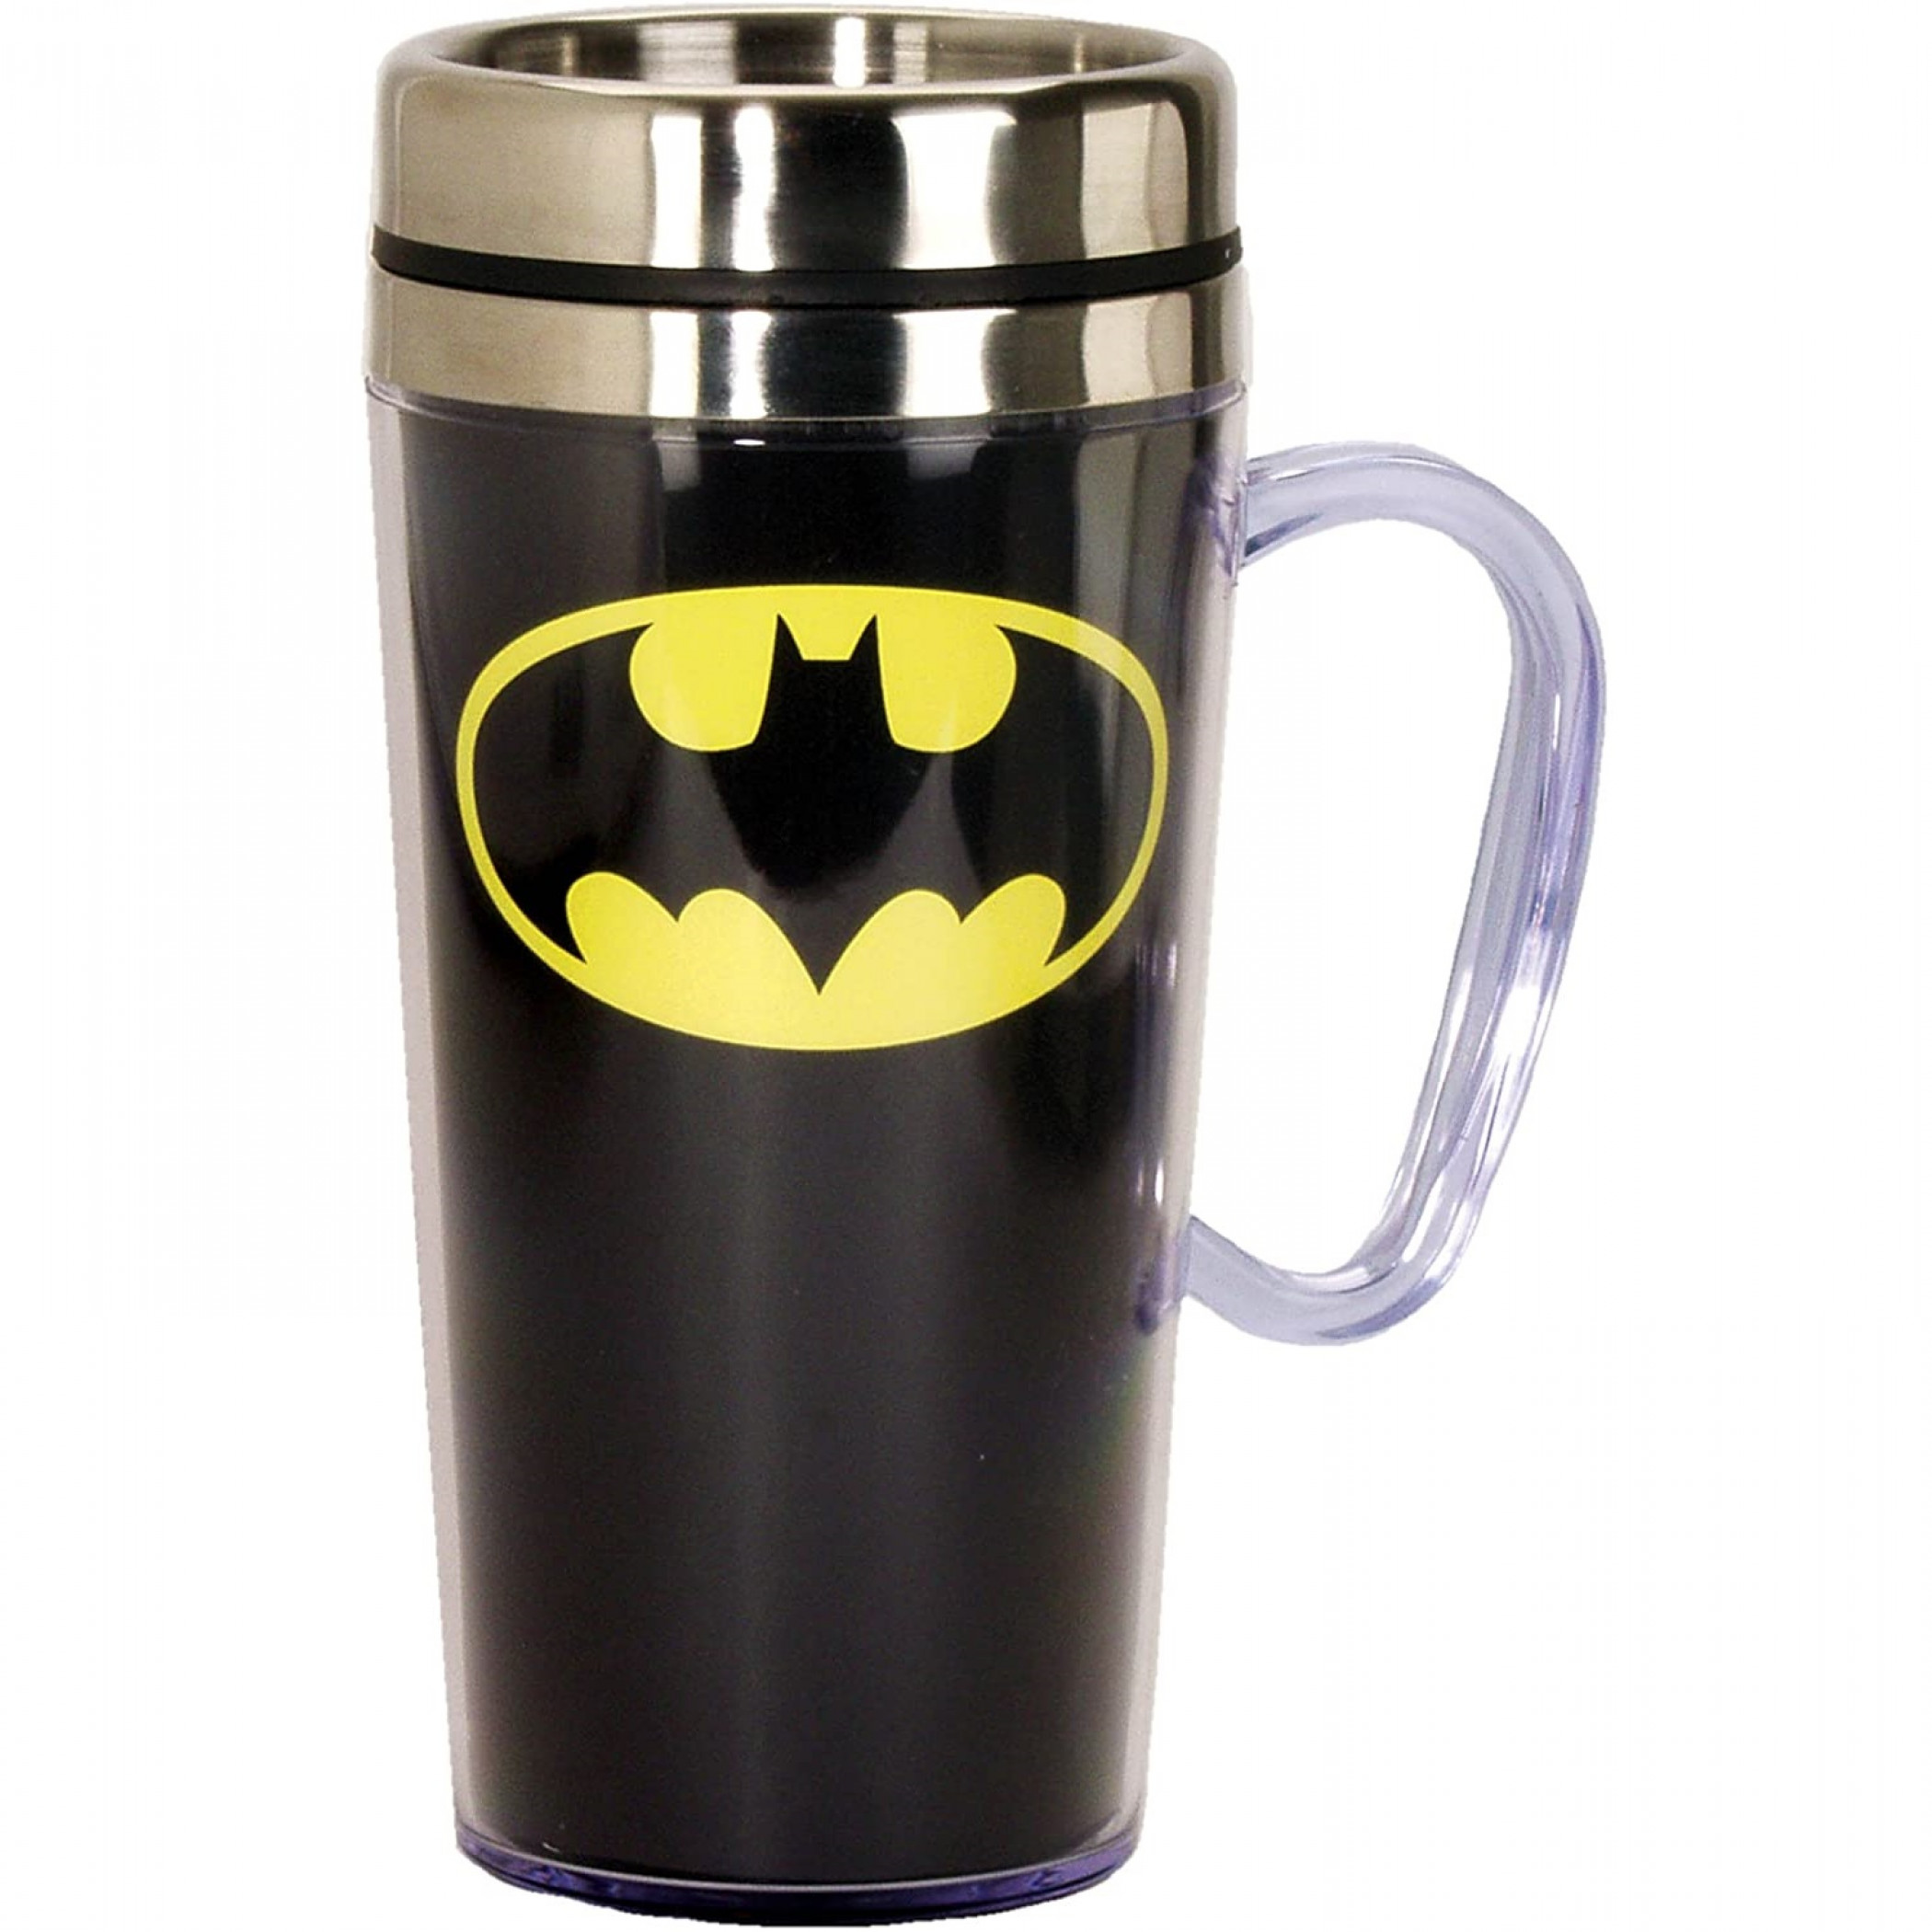 Batman Symbol Travel Mug